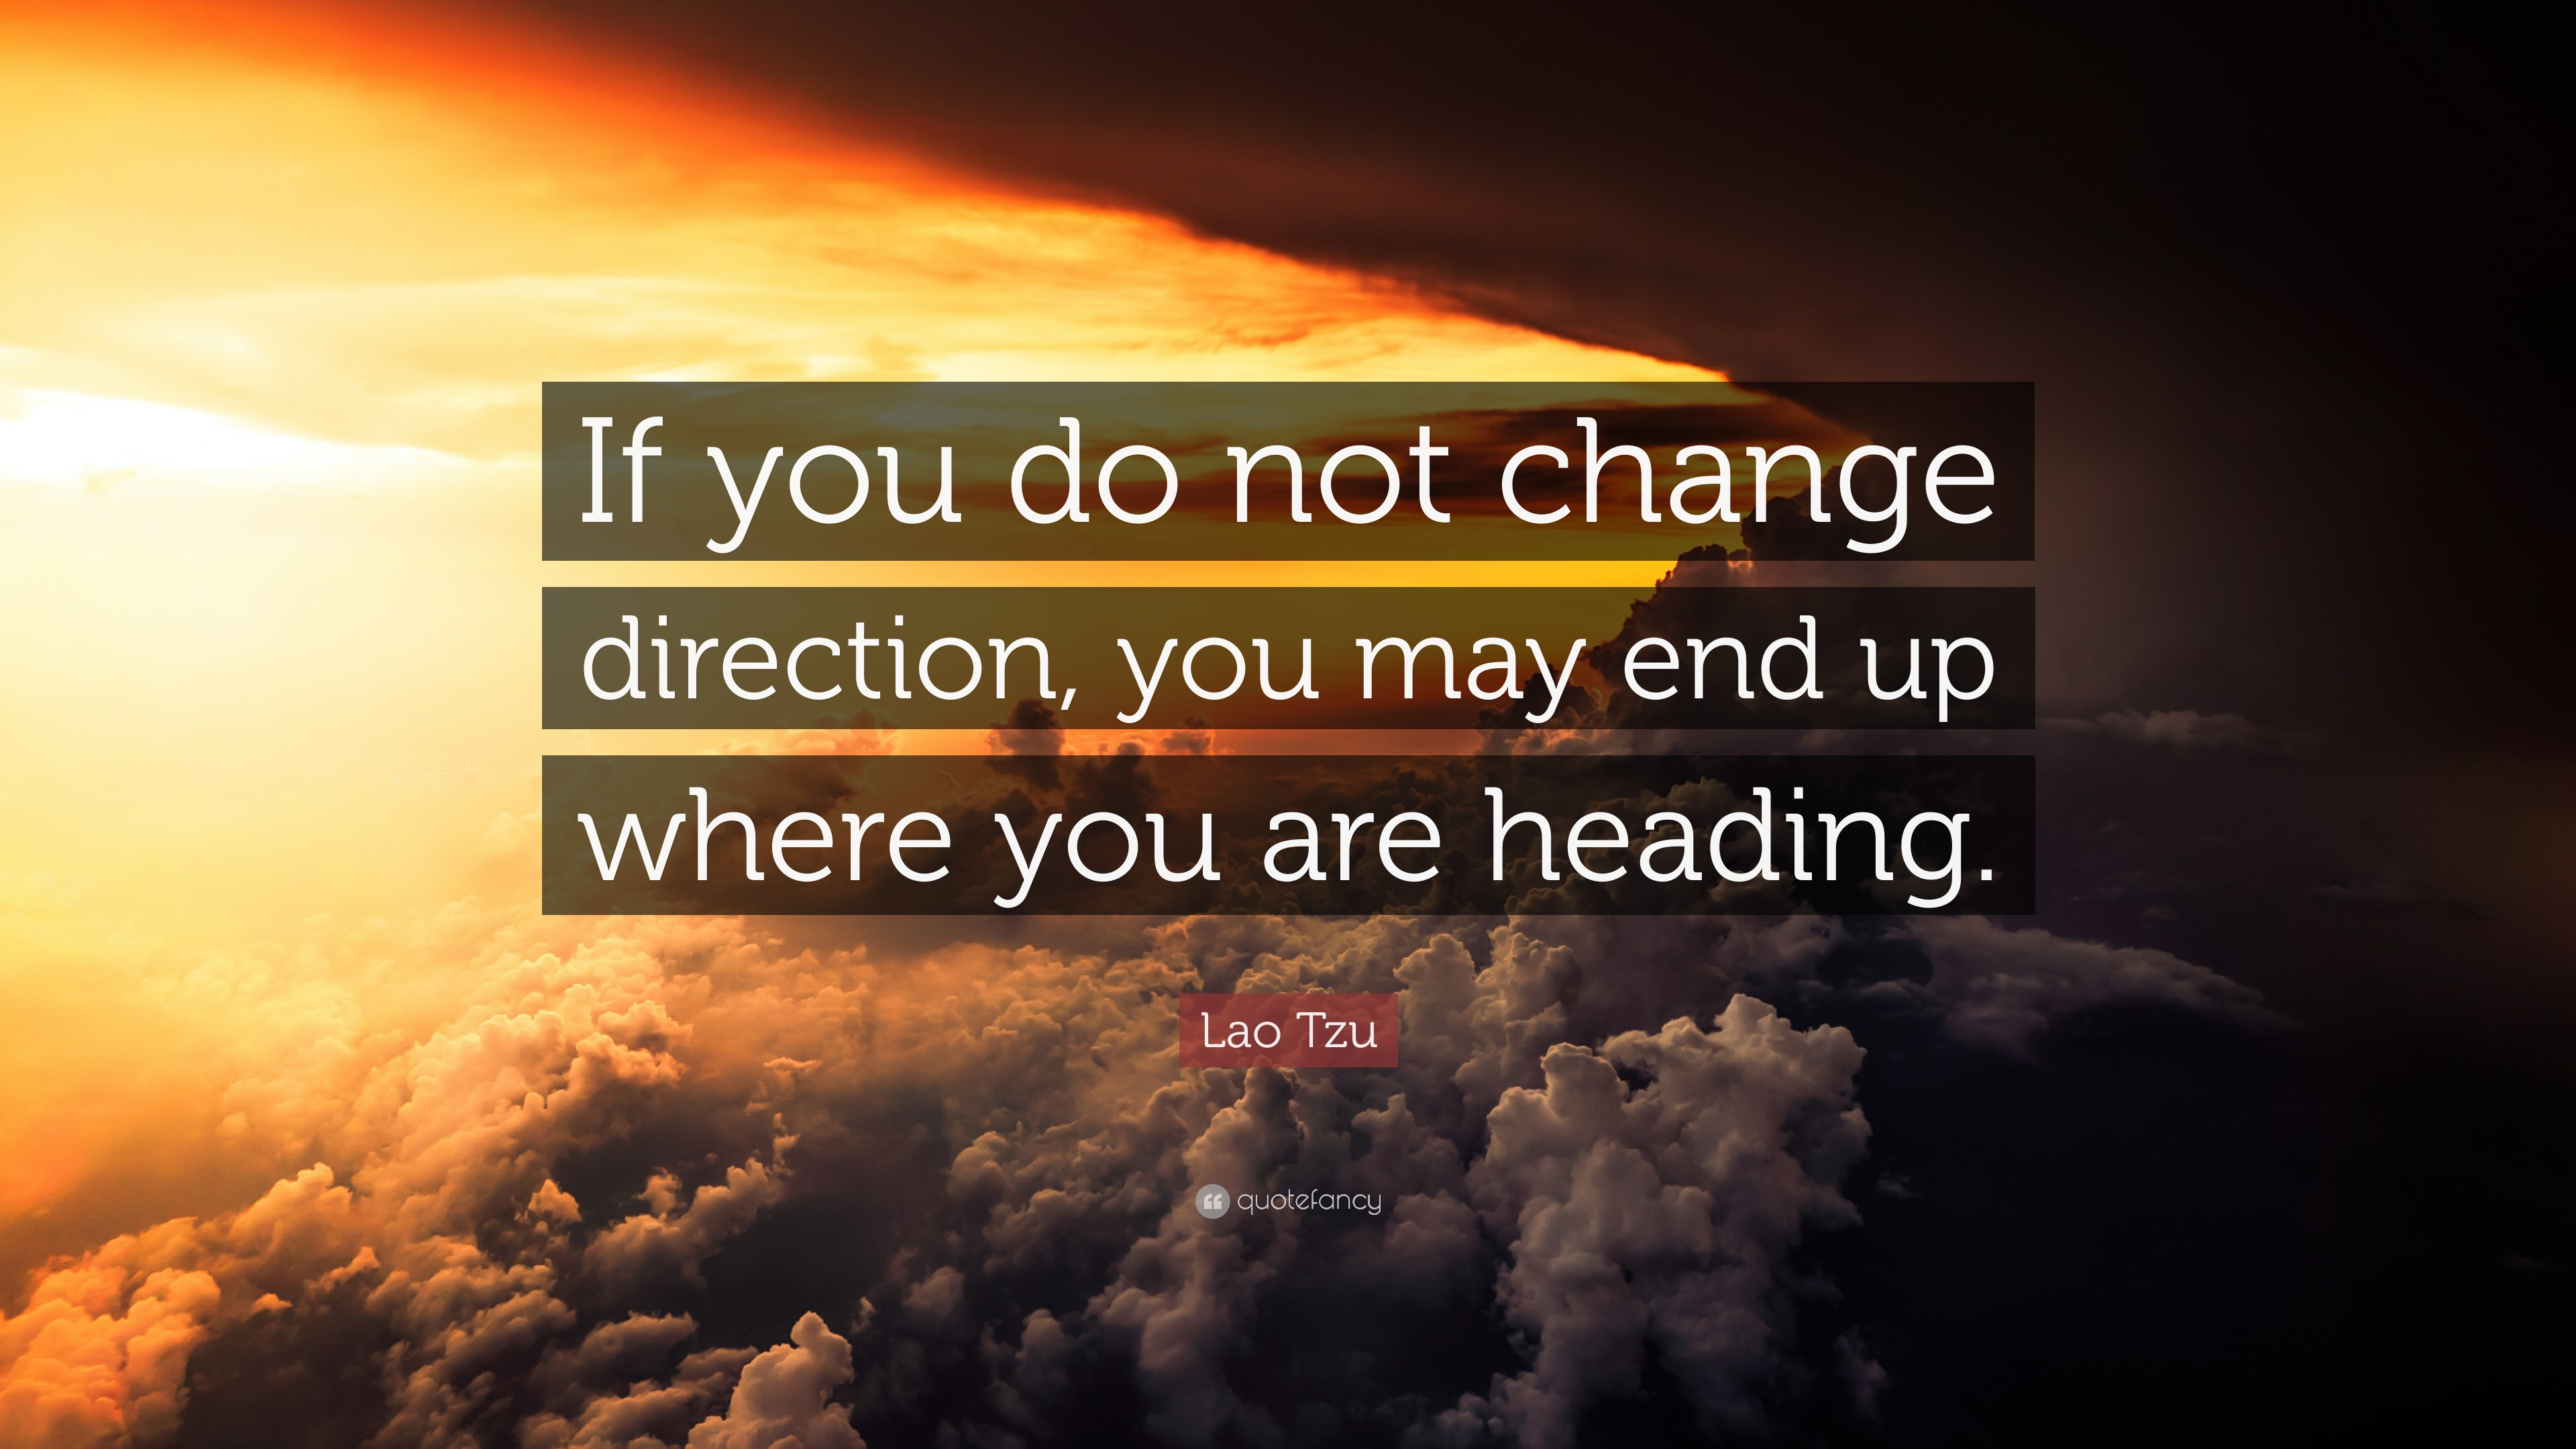 Lao tzu quote if you do not change direction you may end up where